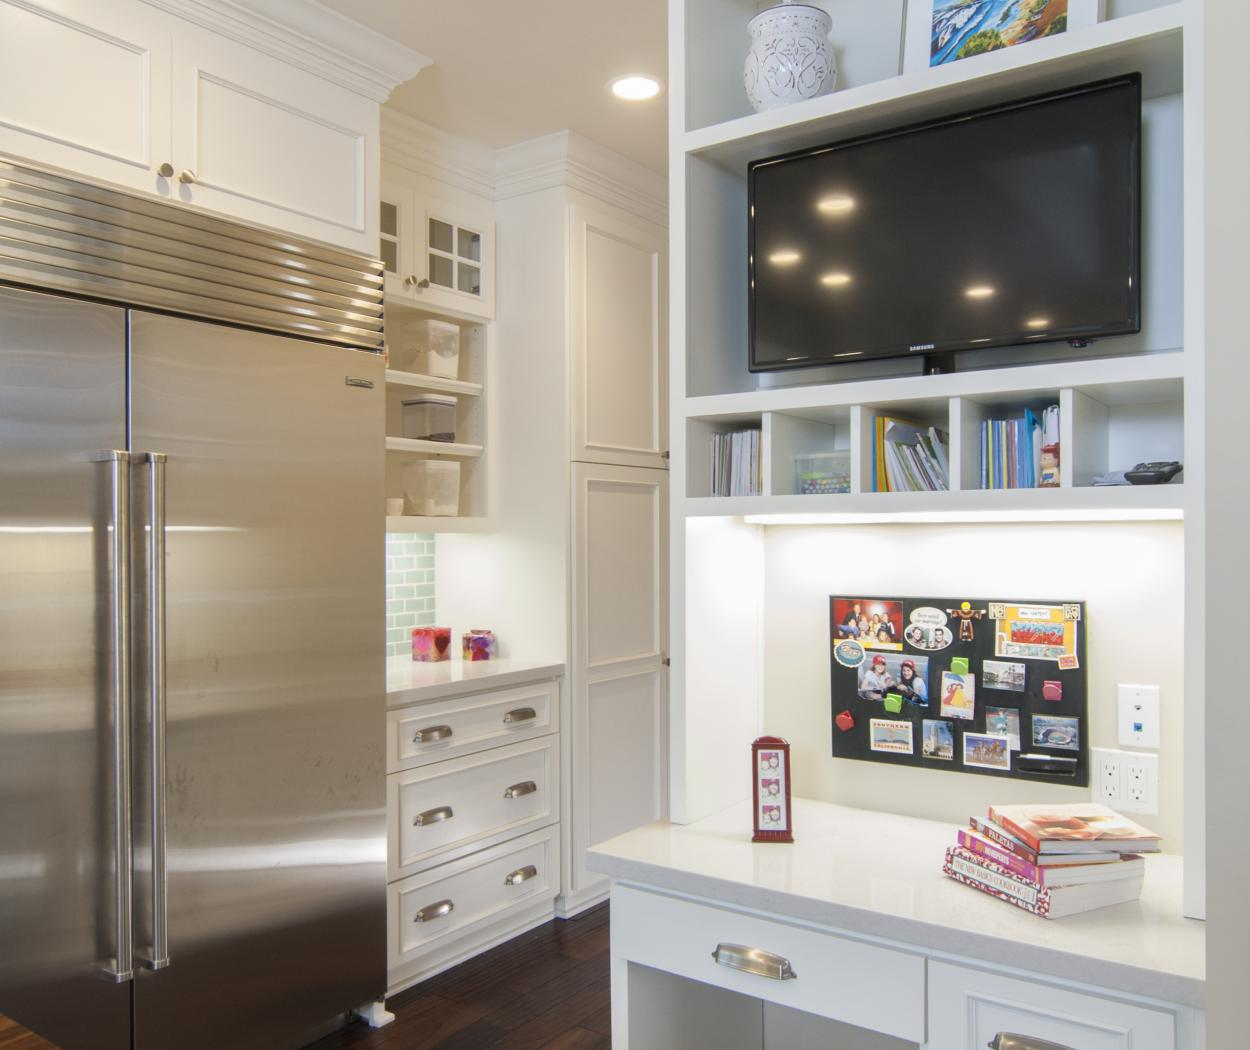 Transitional White Kitchen with a Built-In Desk and Open Cubbies